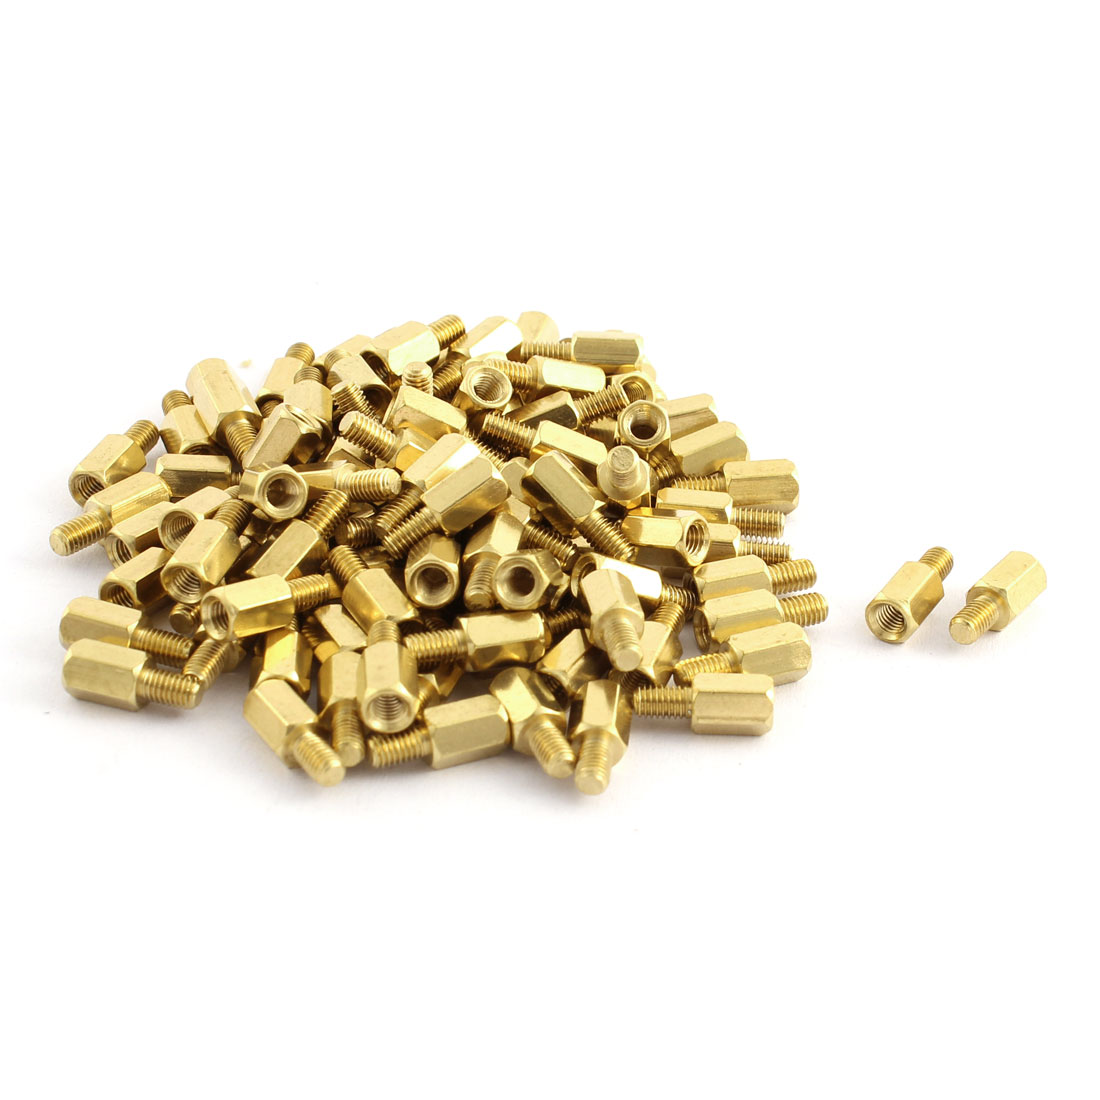 100 Pcs PC PCB Motherboard Brass Standoff Hexagonal Spacer M3 3+5mm